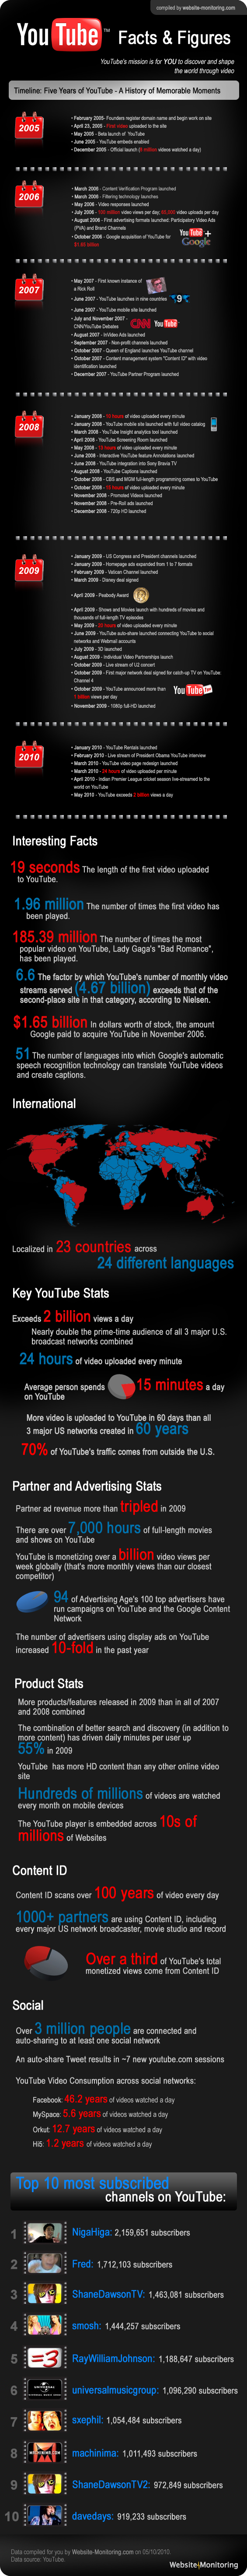 youtube infographic.jpg